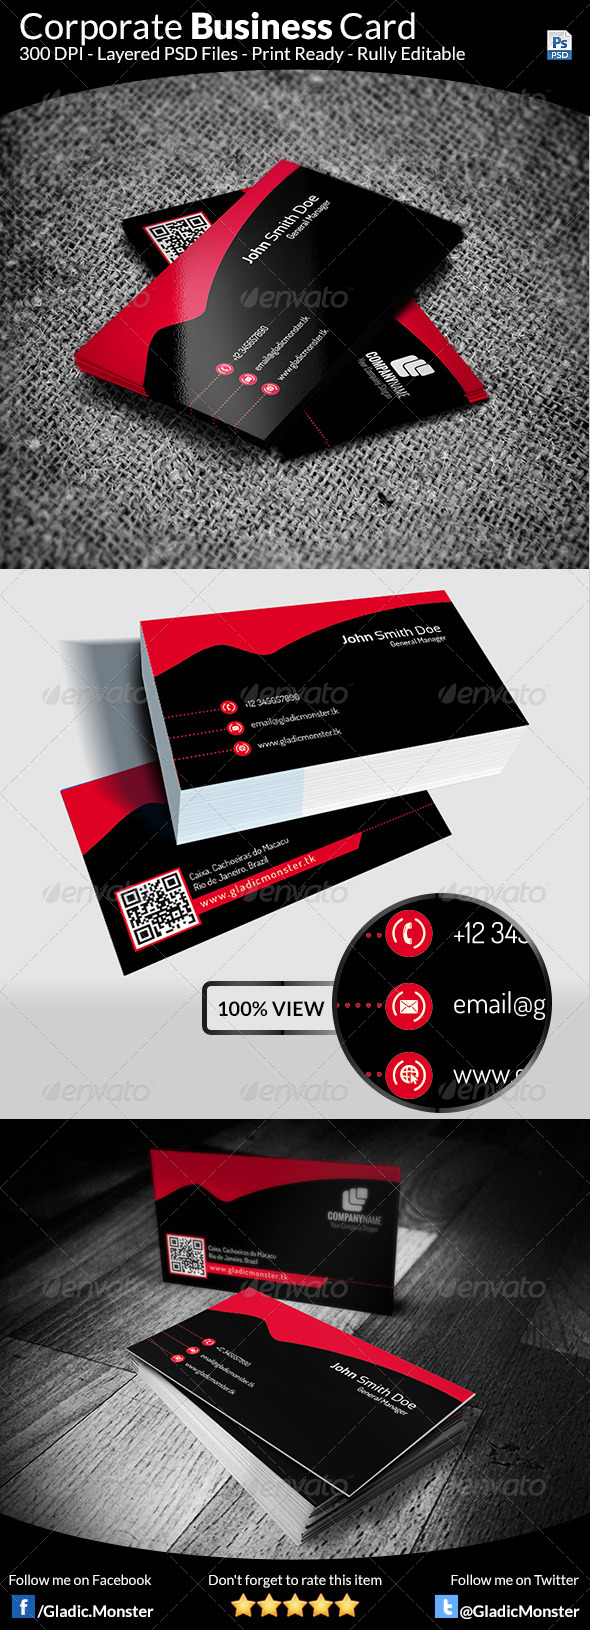 Corporate Business Card v-1 - Corporate Business Cards